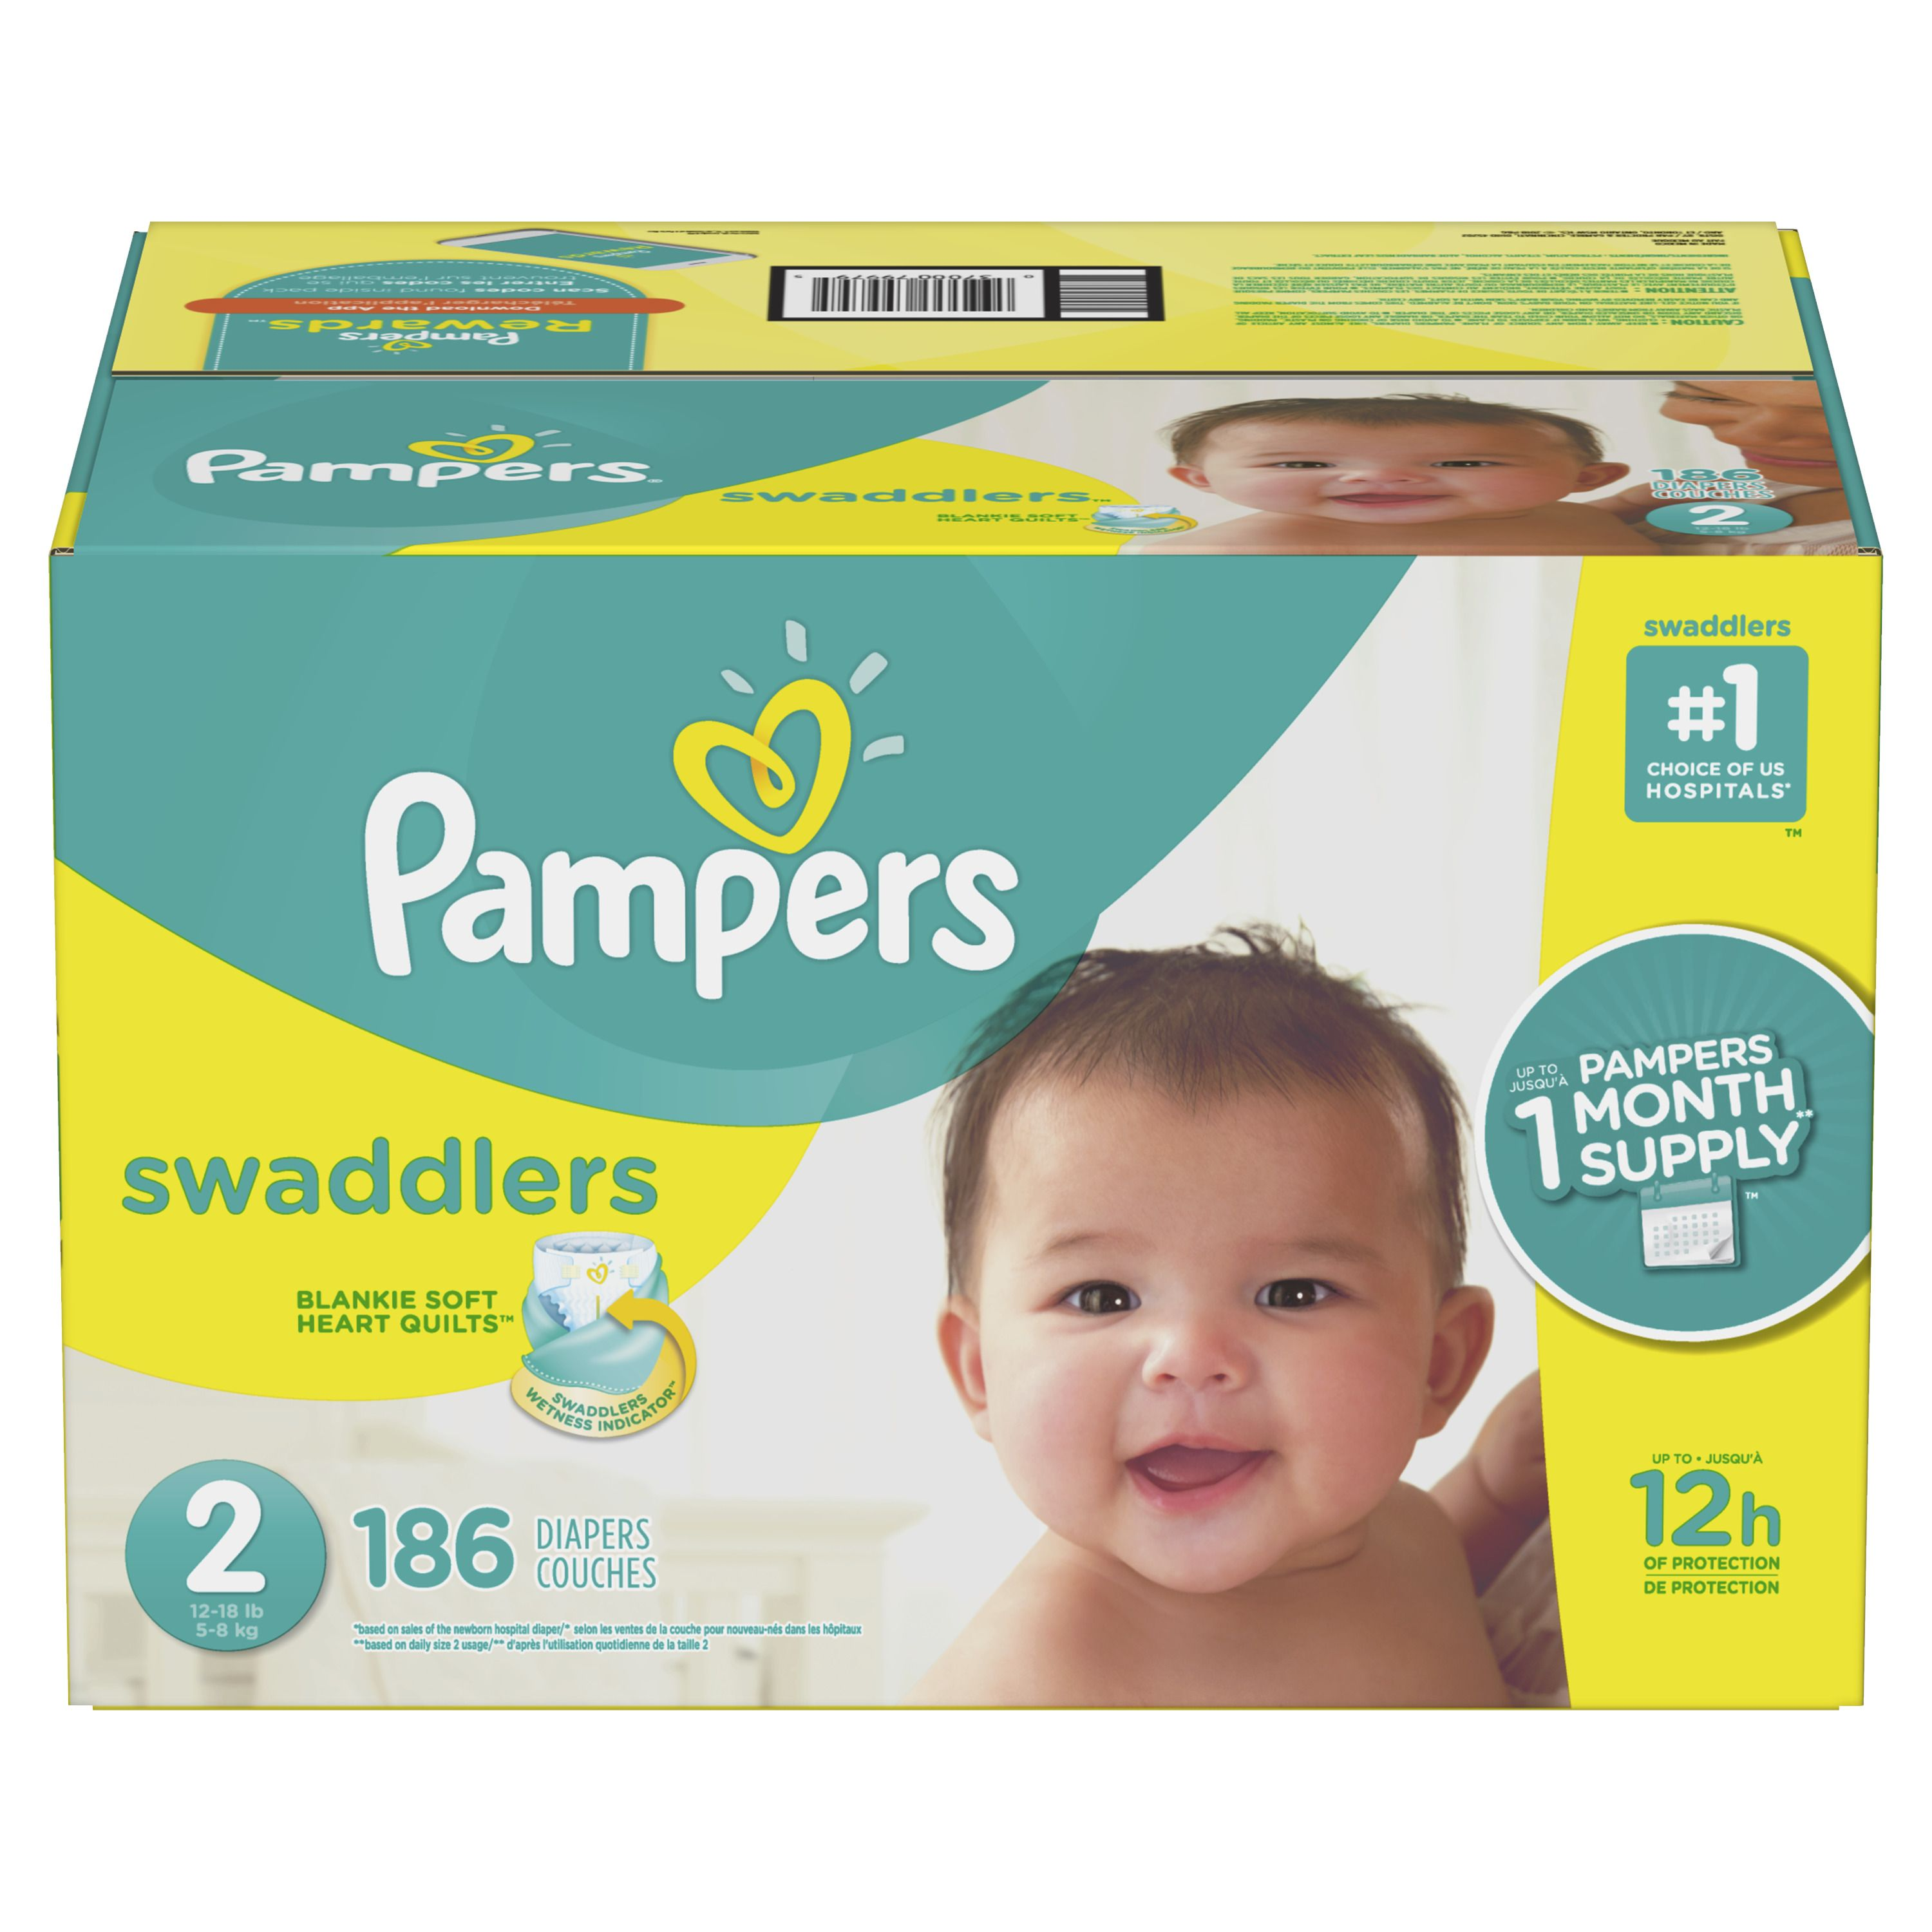 Pampers Swaddlers Diapers Soft And Absorbent Size 2 148 Ct Walmart Com Pampers Swaddlers Swaddlers Pampers Swaddlers Diapers